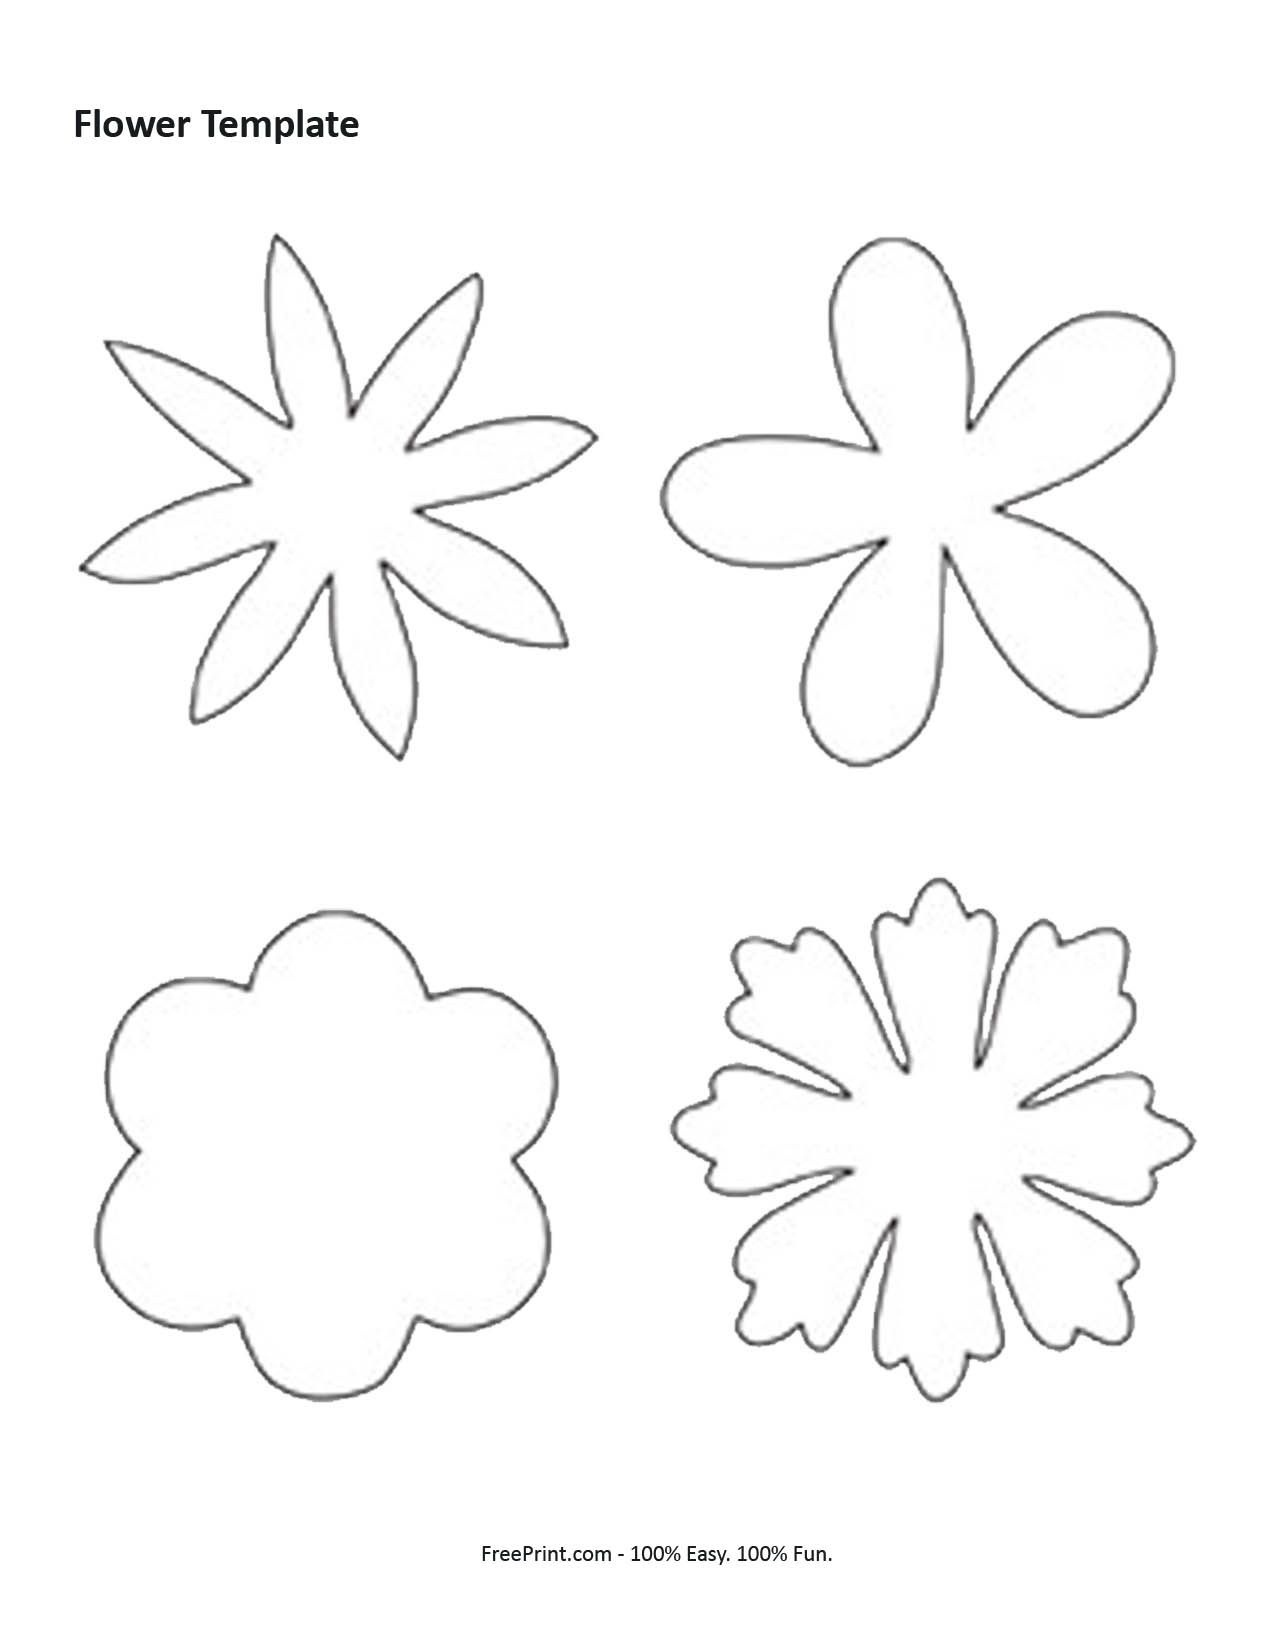 7 Best Images Of Shape Flower Printable Templates - Free Printable - Free Shape Templates Printable